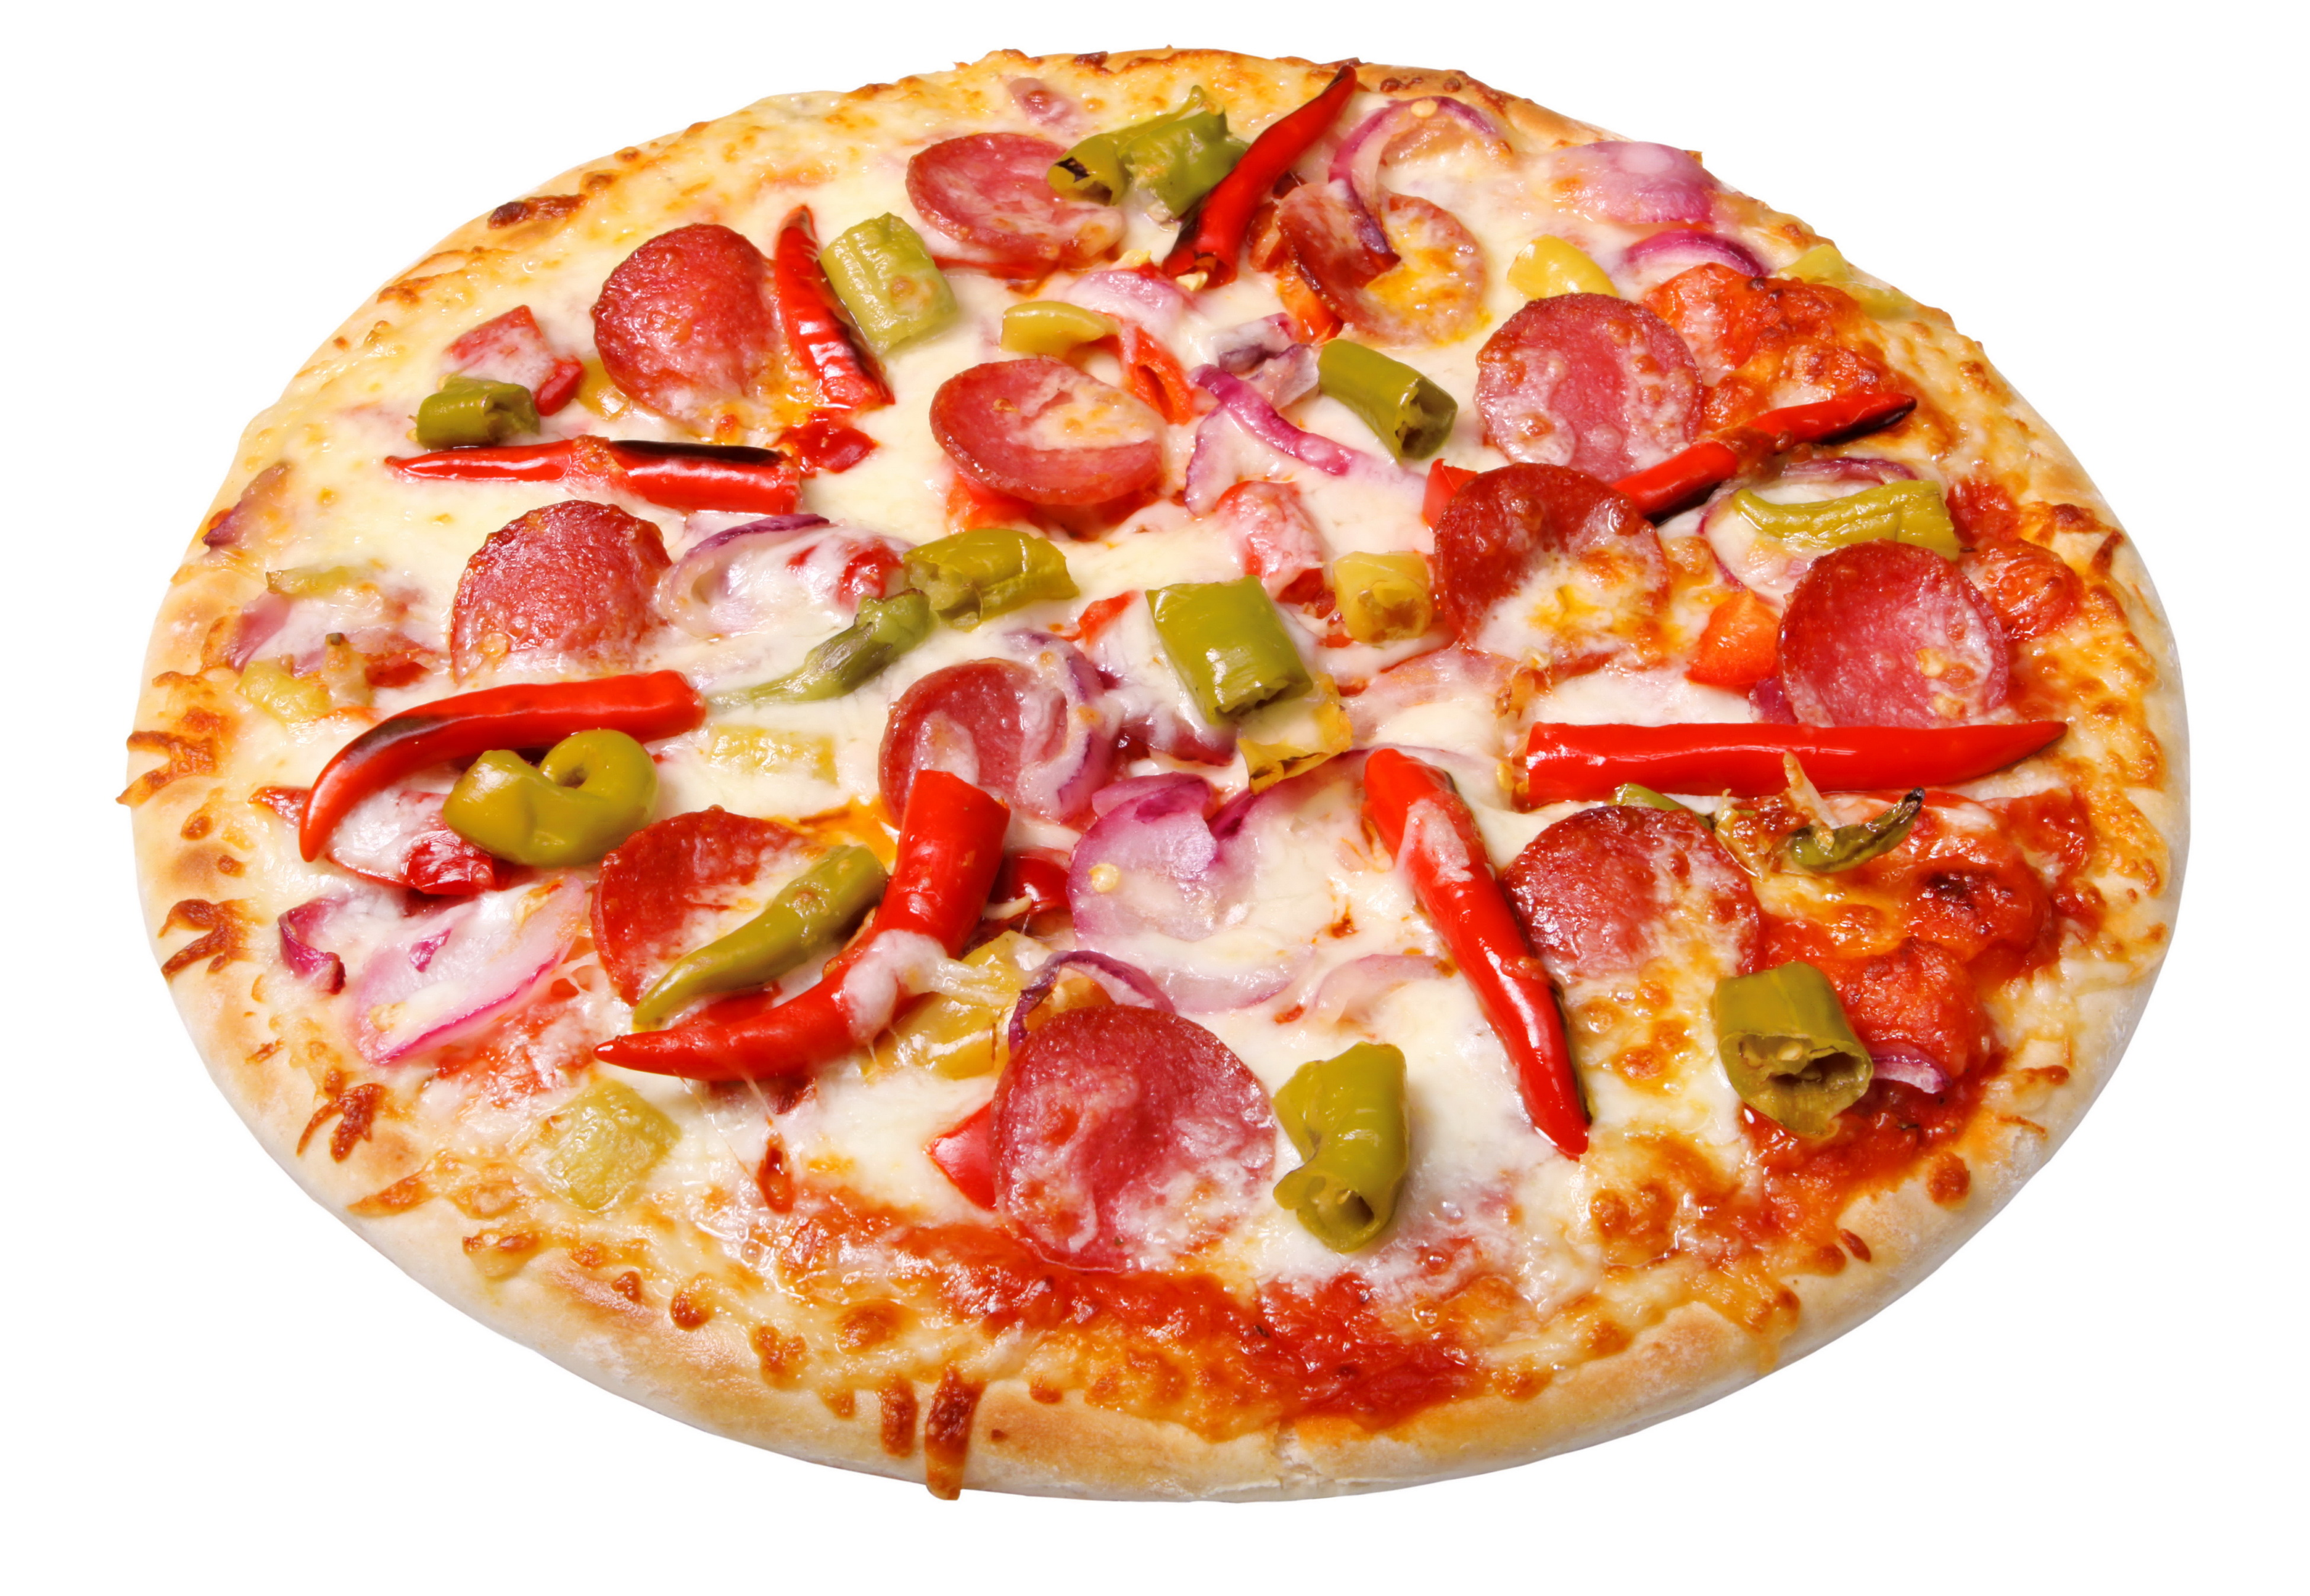 Alpha coders wallpaper abyss food pizza 304628